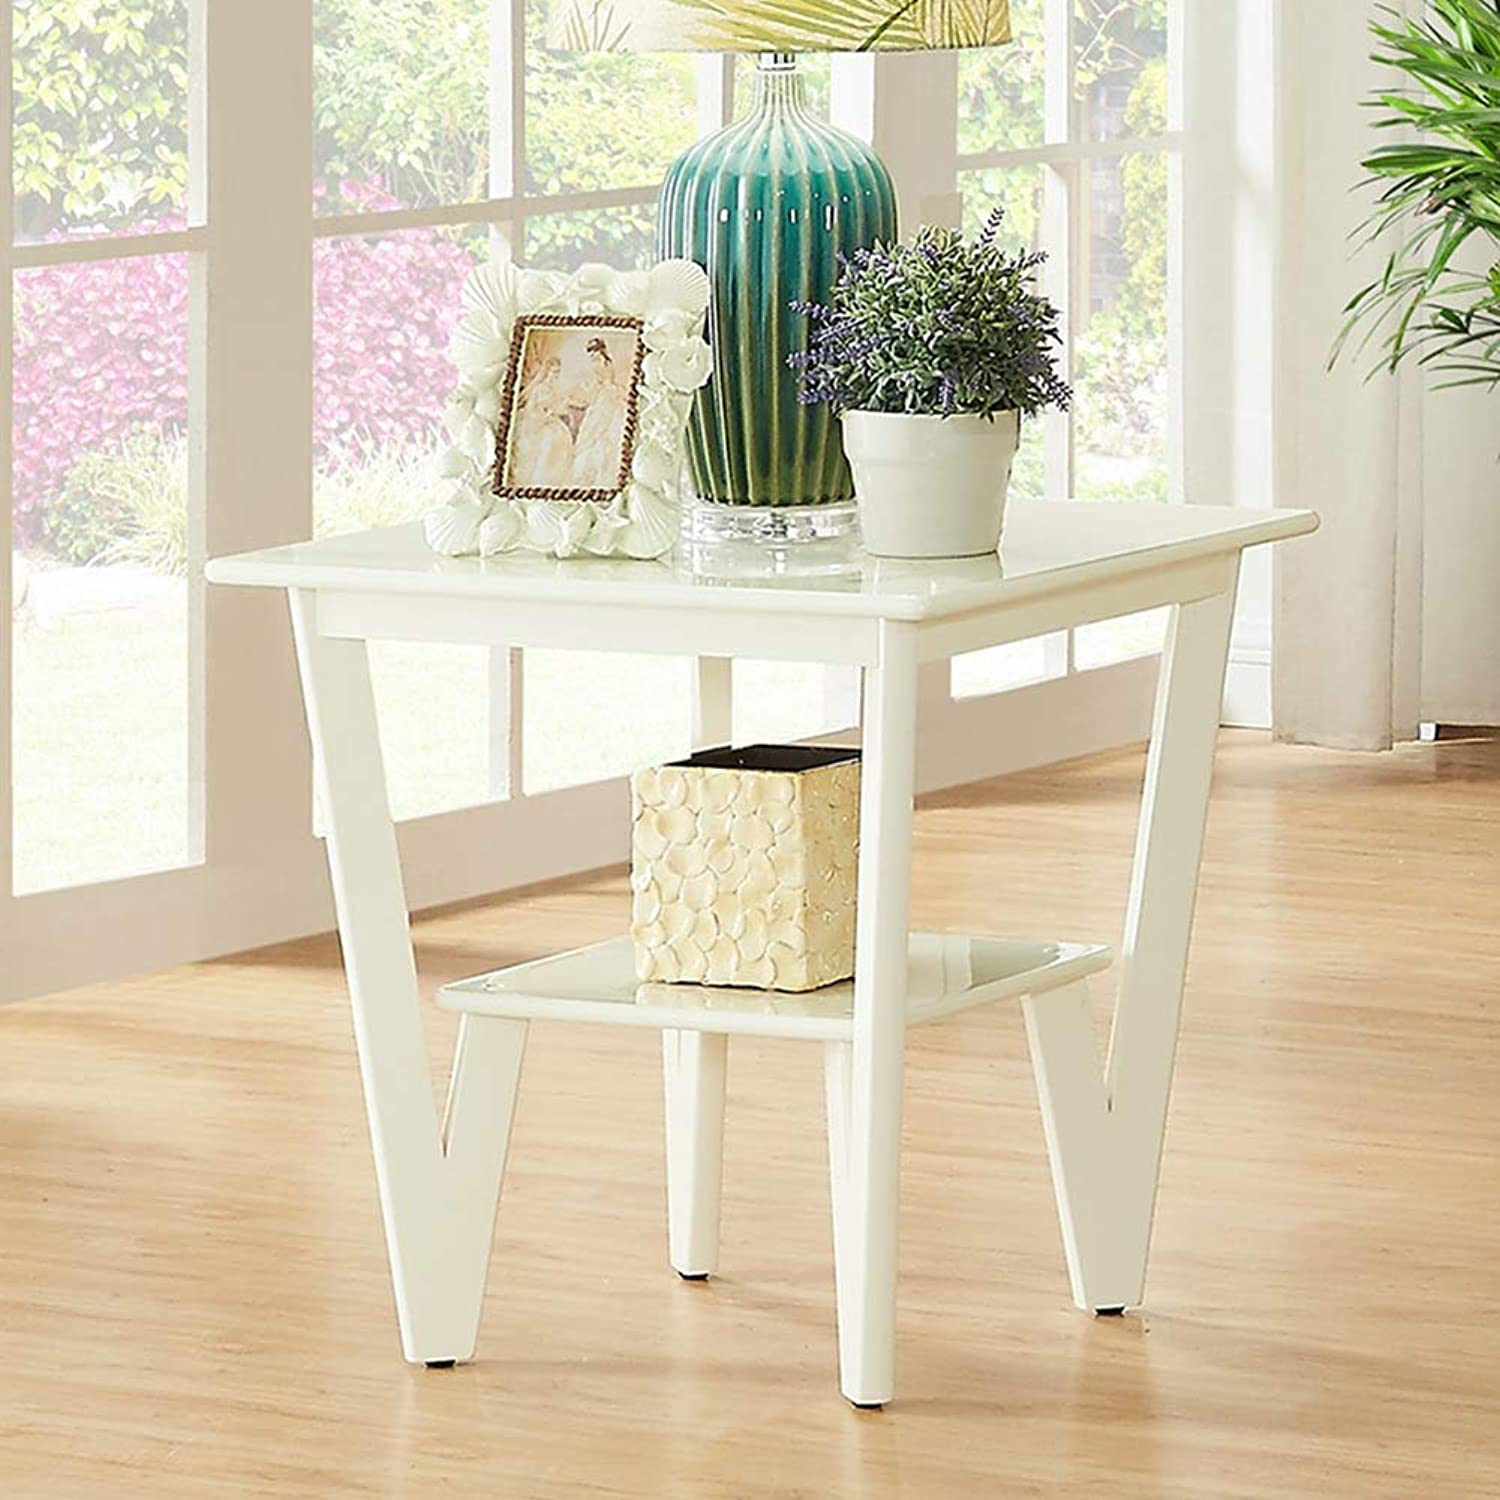 Virod-Desks Corner Table, Solid Wood Side Table, Double Storage Shelf, Small Square Table, Suitable for Sofa Side Bedside Modern Style (color   White)